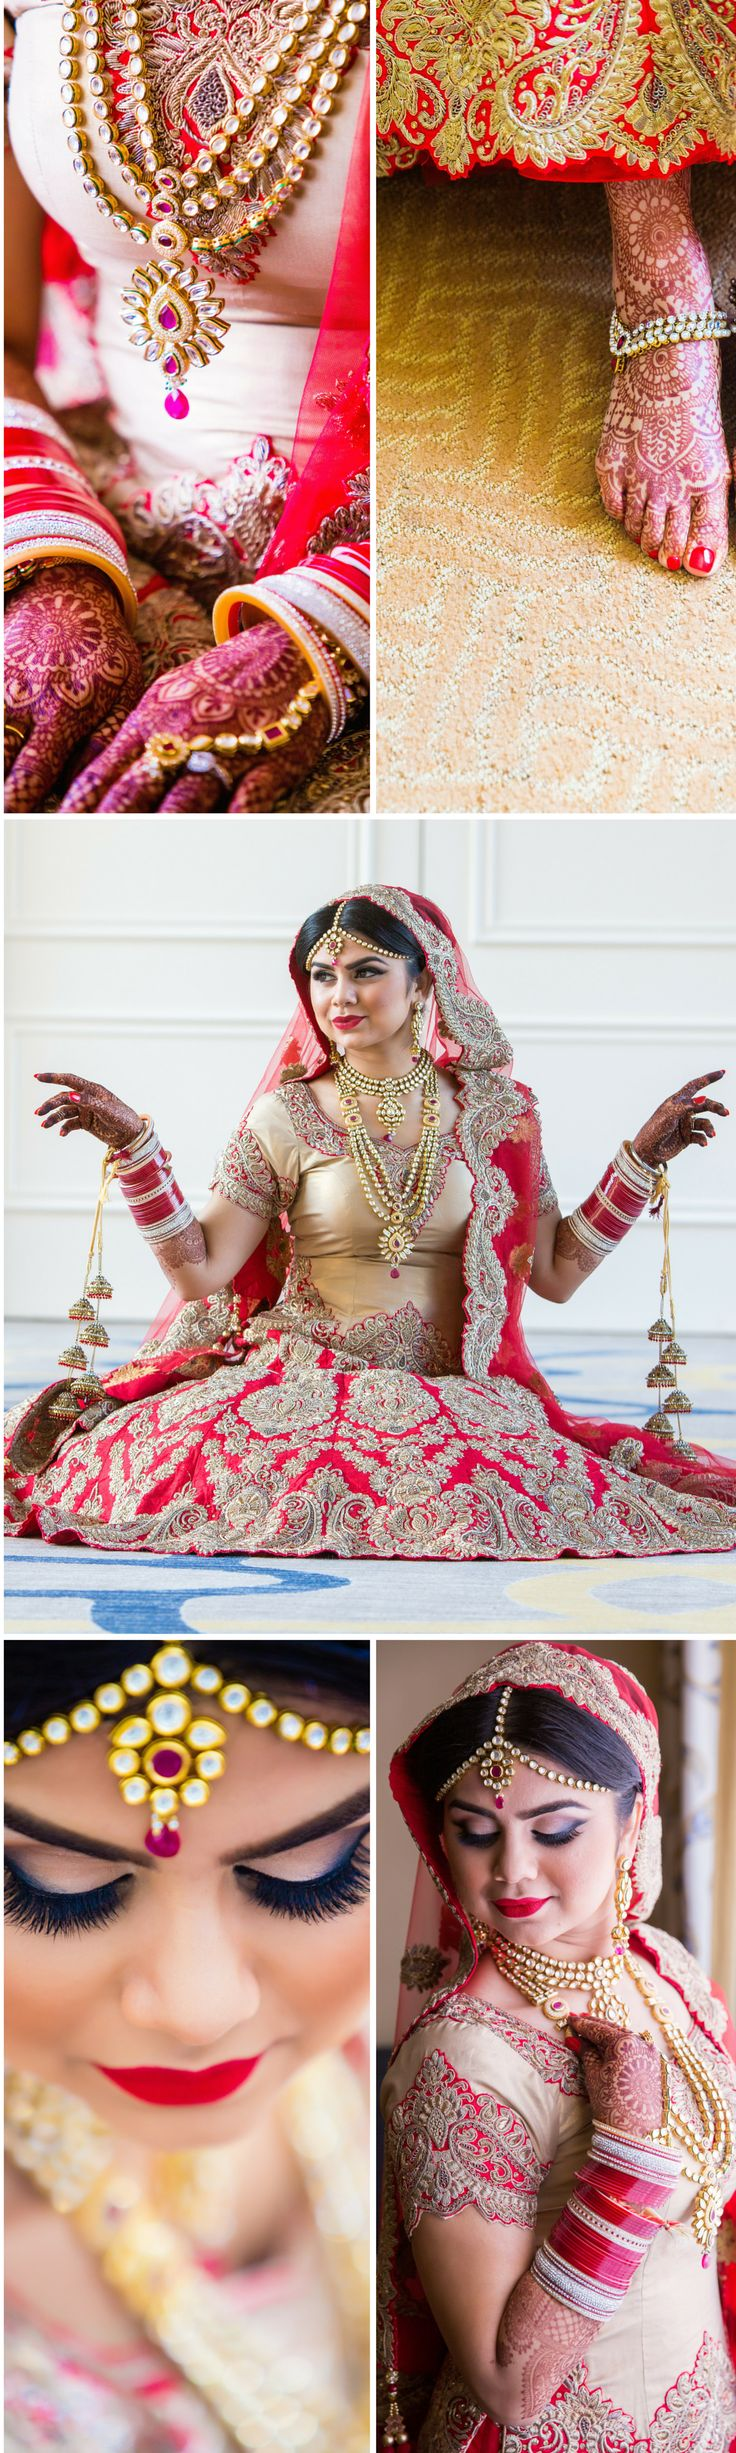 love this sikh bride's jewelry and wedding lengha